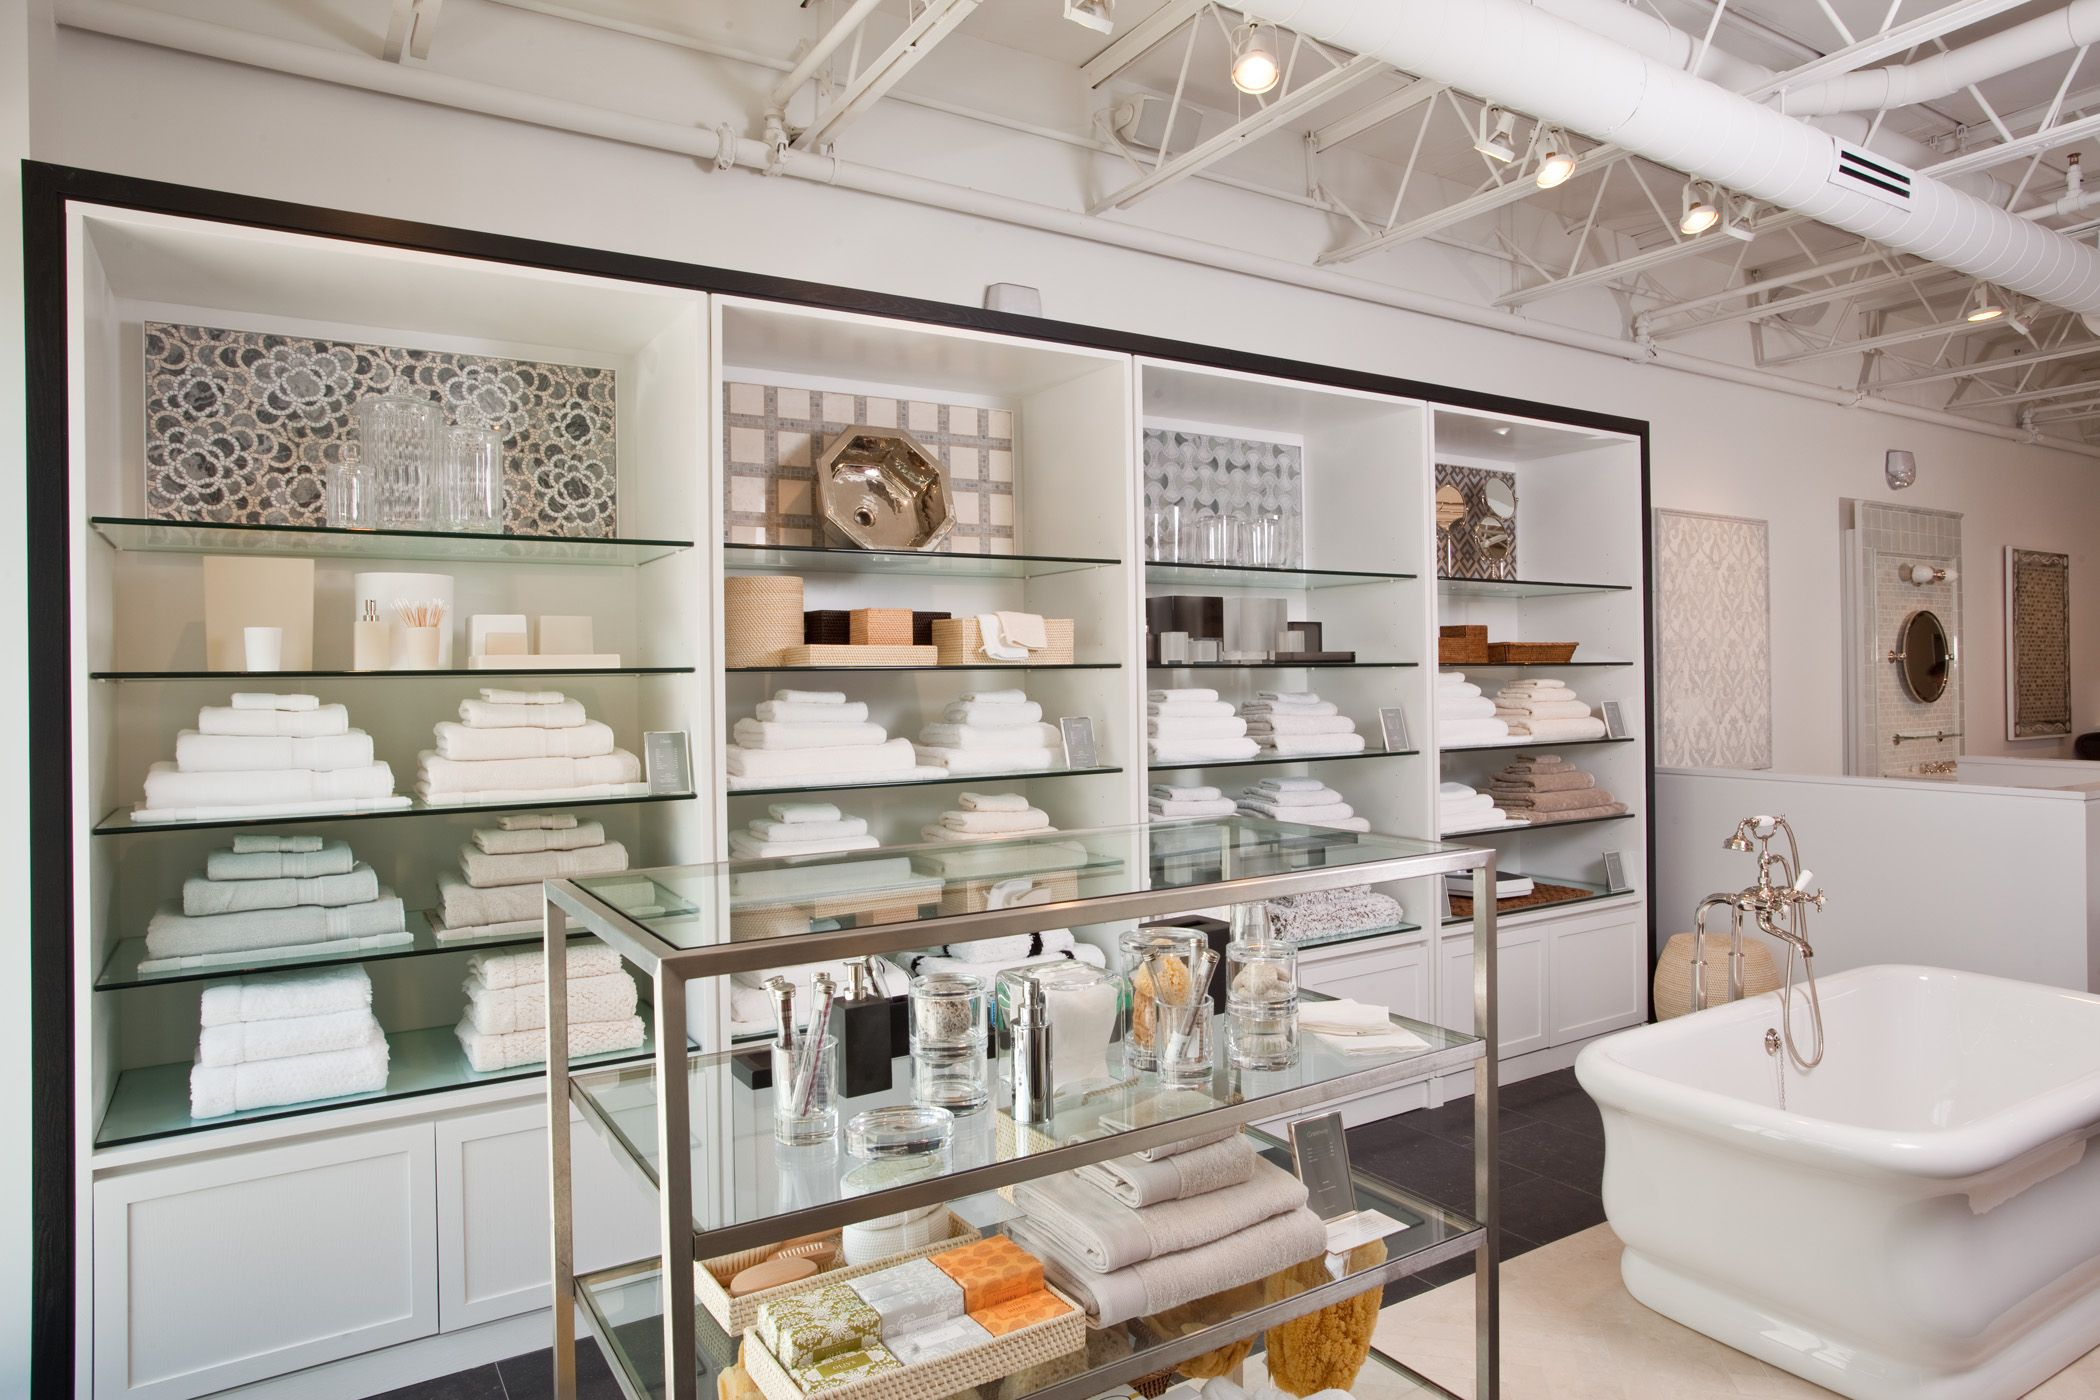 Waterworks Miami Showroom (With images) | Cafe shop design ...